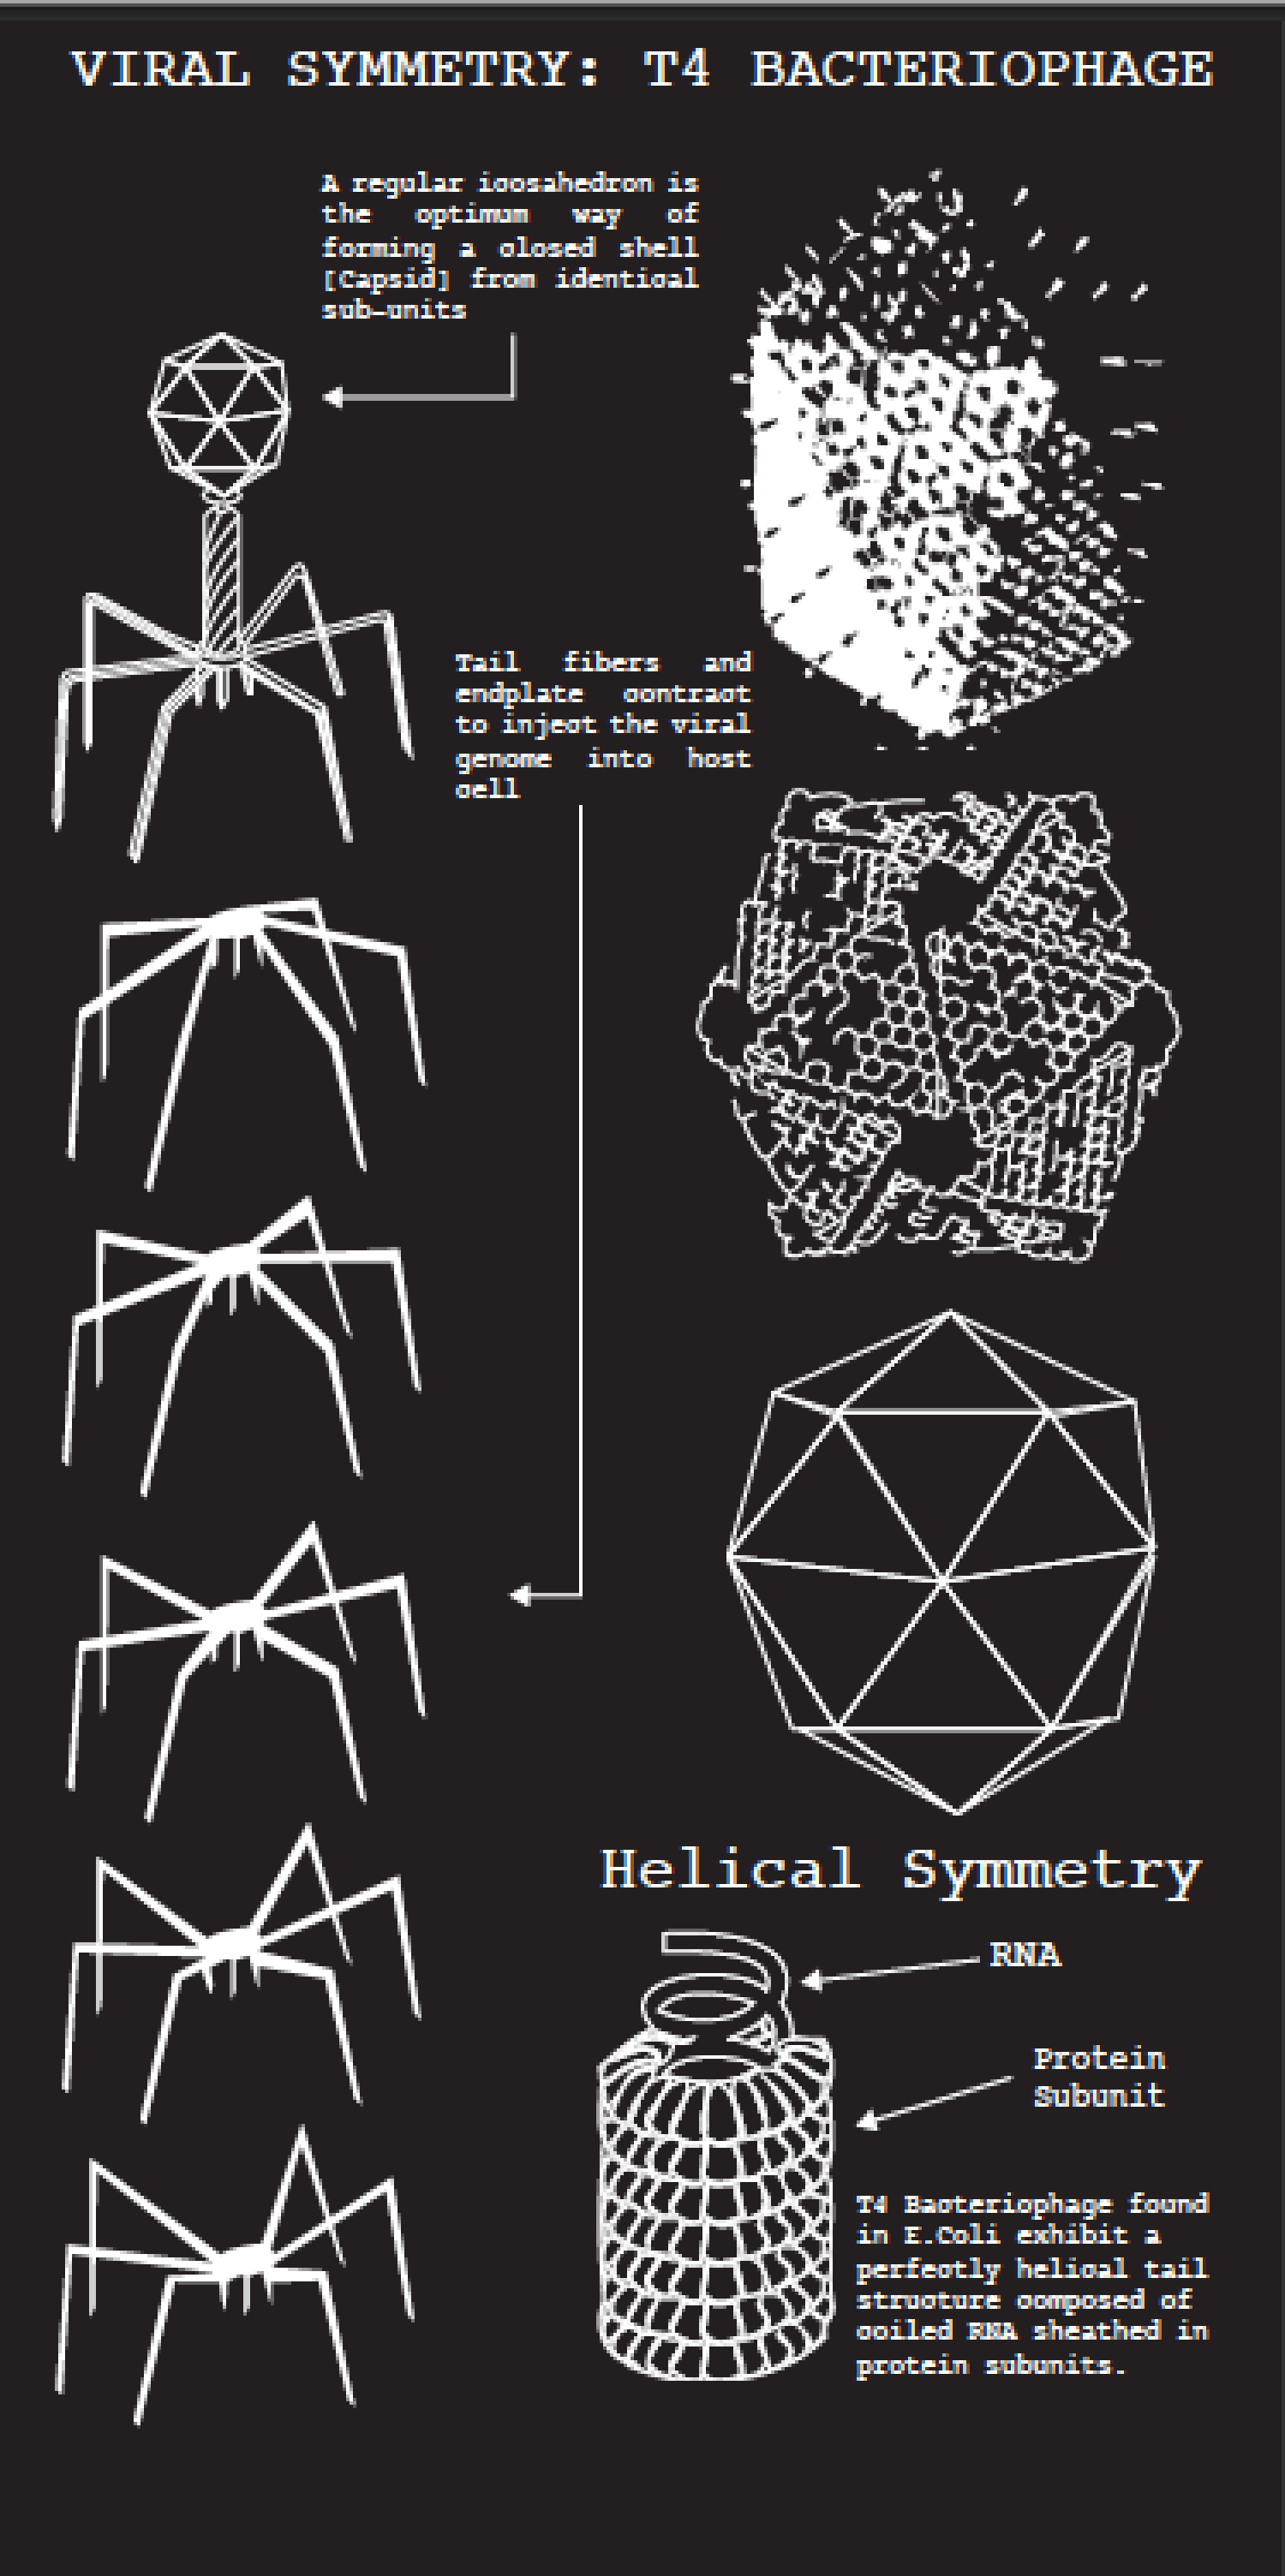 Viral Symmetry Infographic